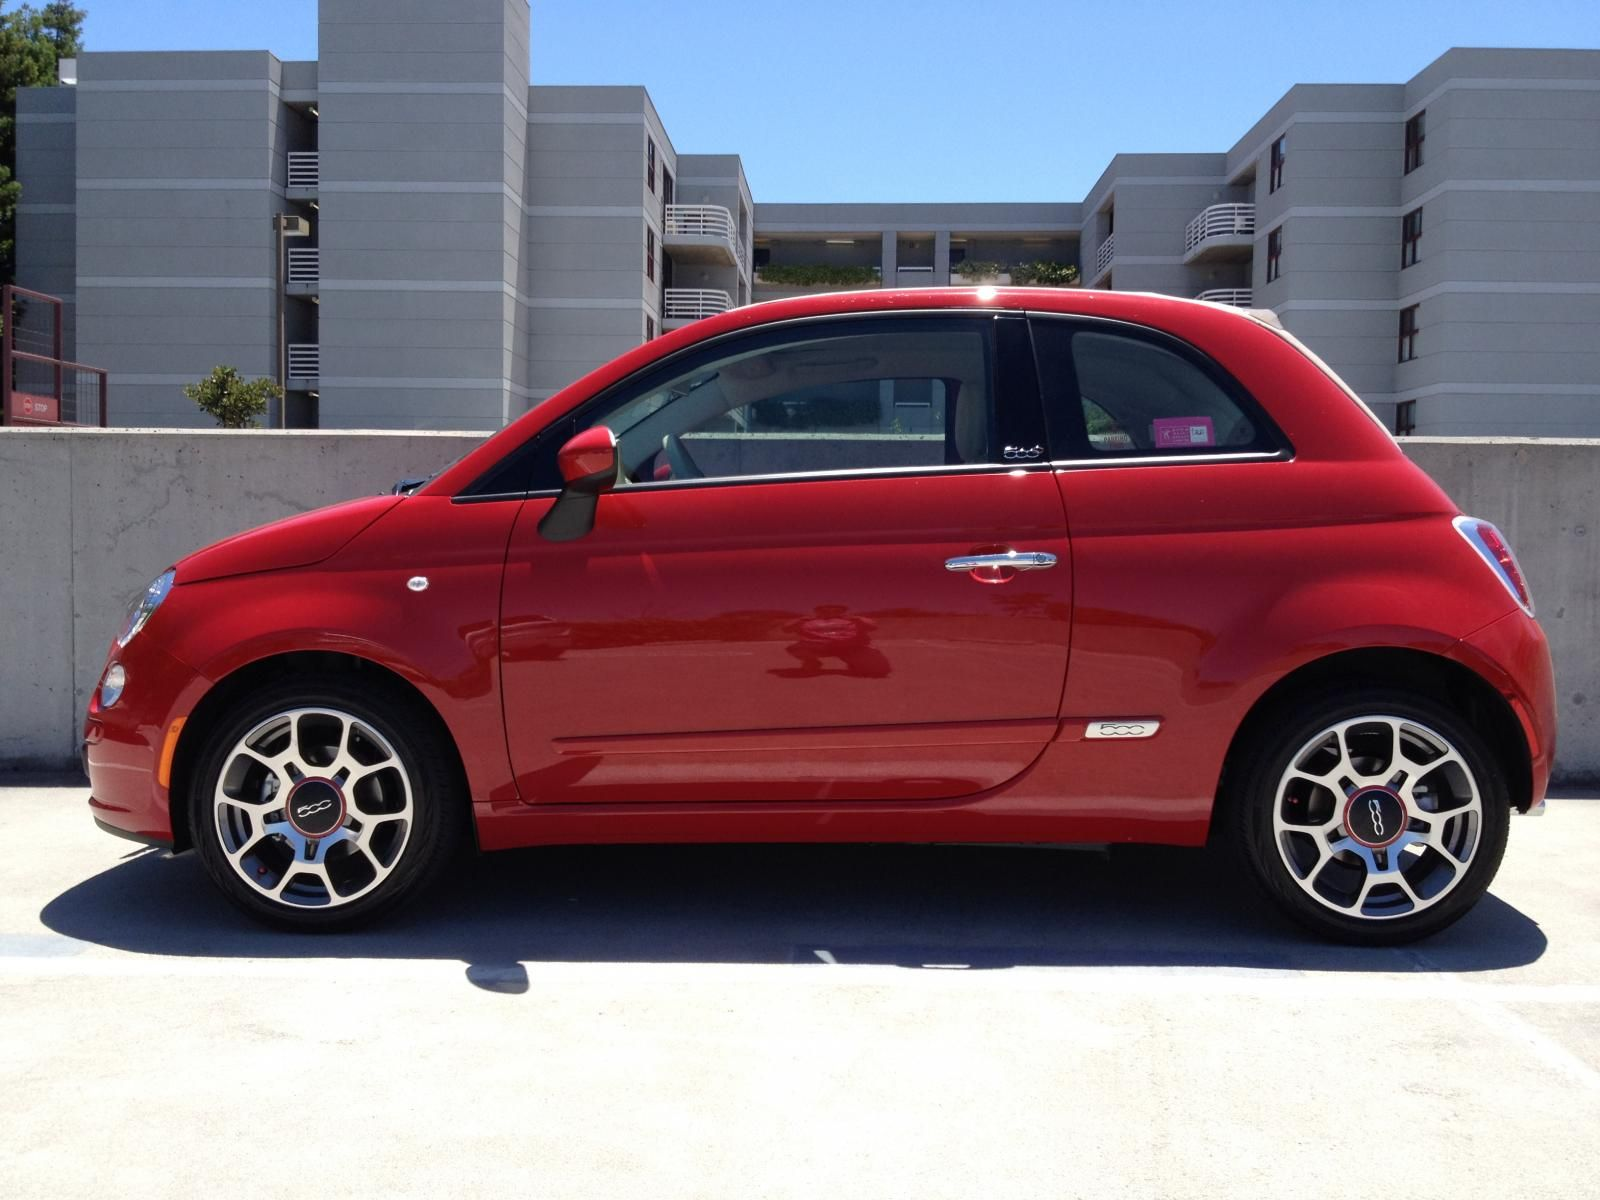 Very nice red fiat 500